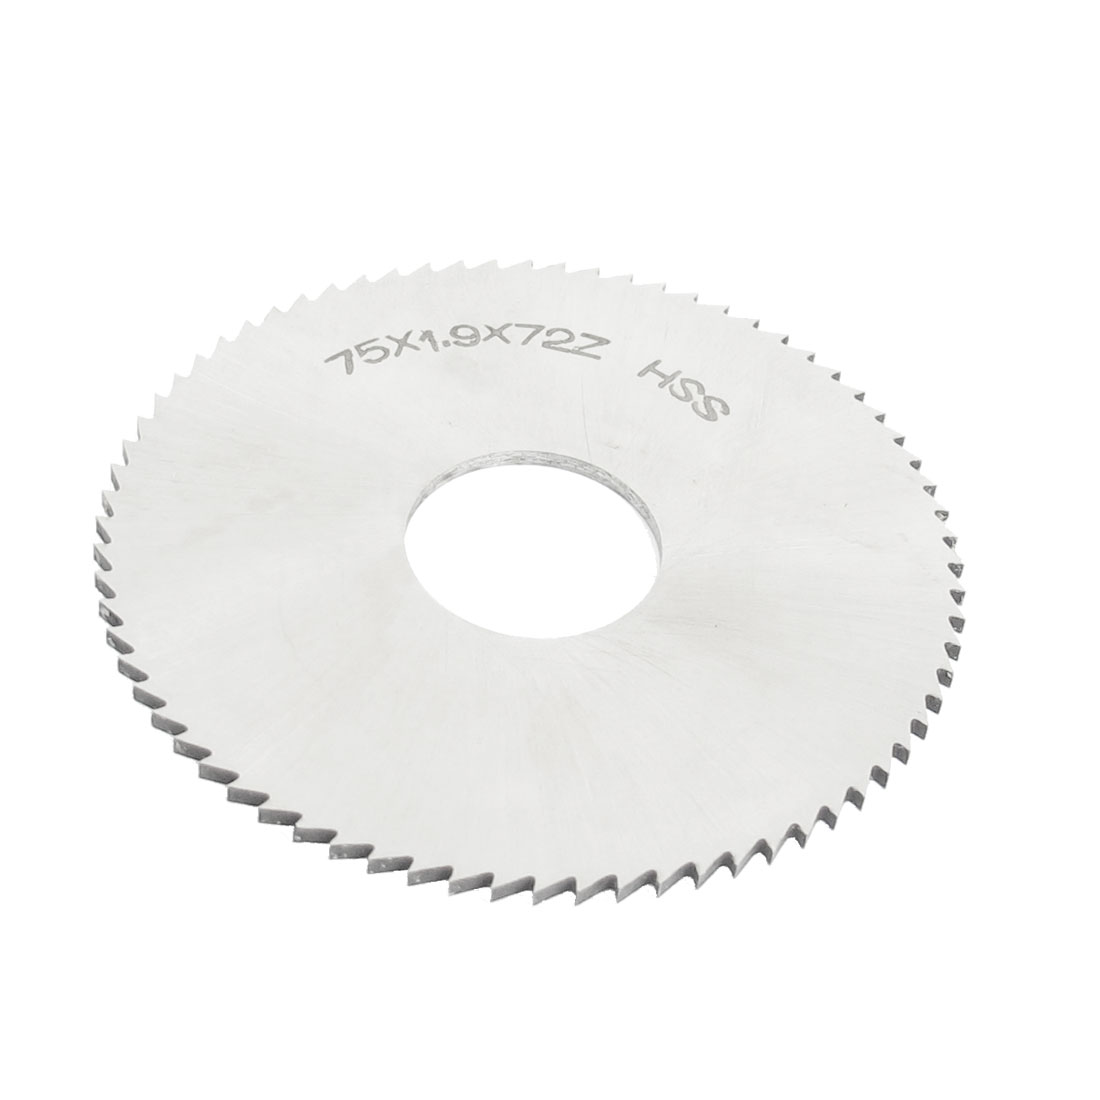 75mm x 22mm x 1.9mm Circular Rotated HSS Slitting Saw 72 Teeth 72T